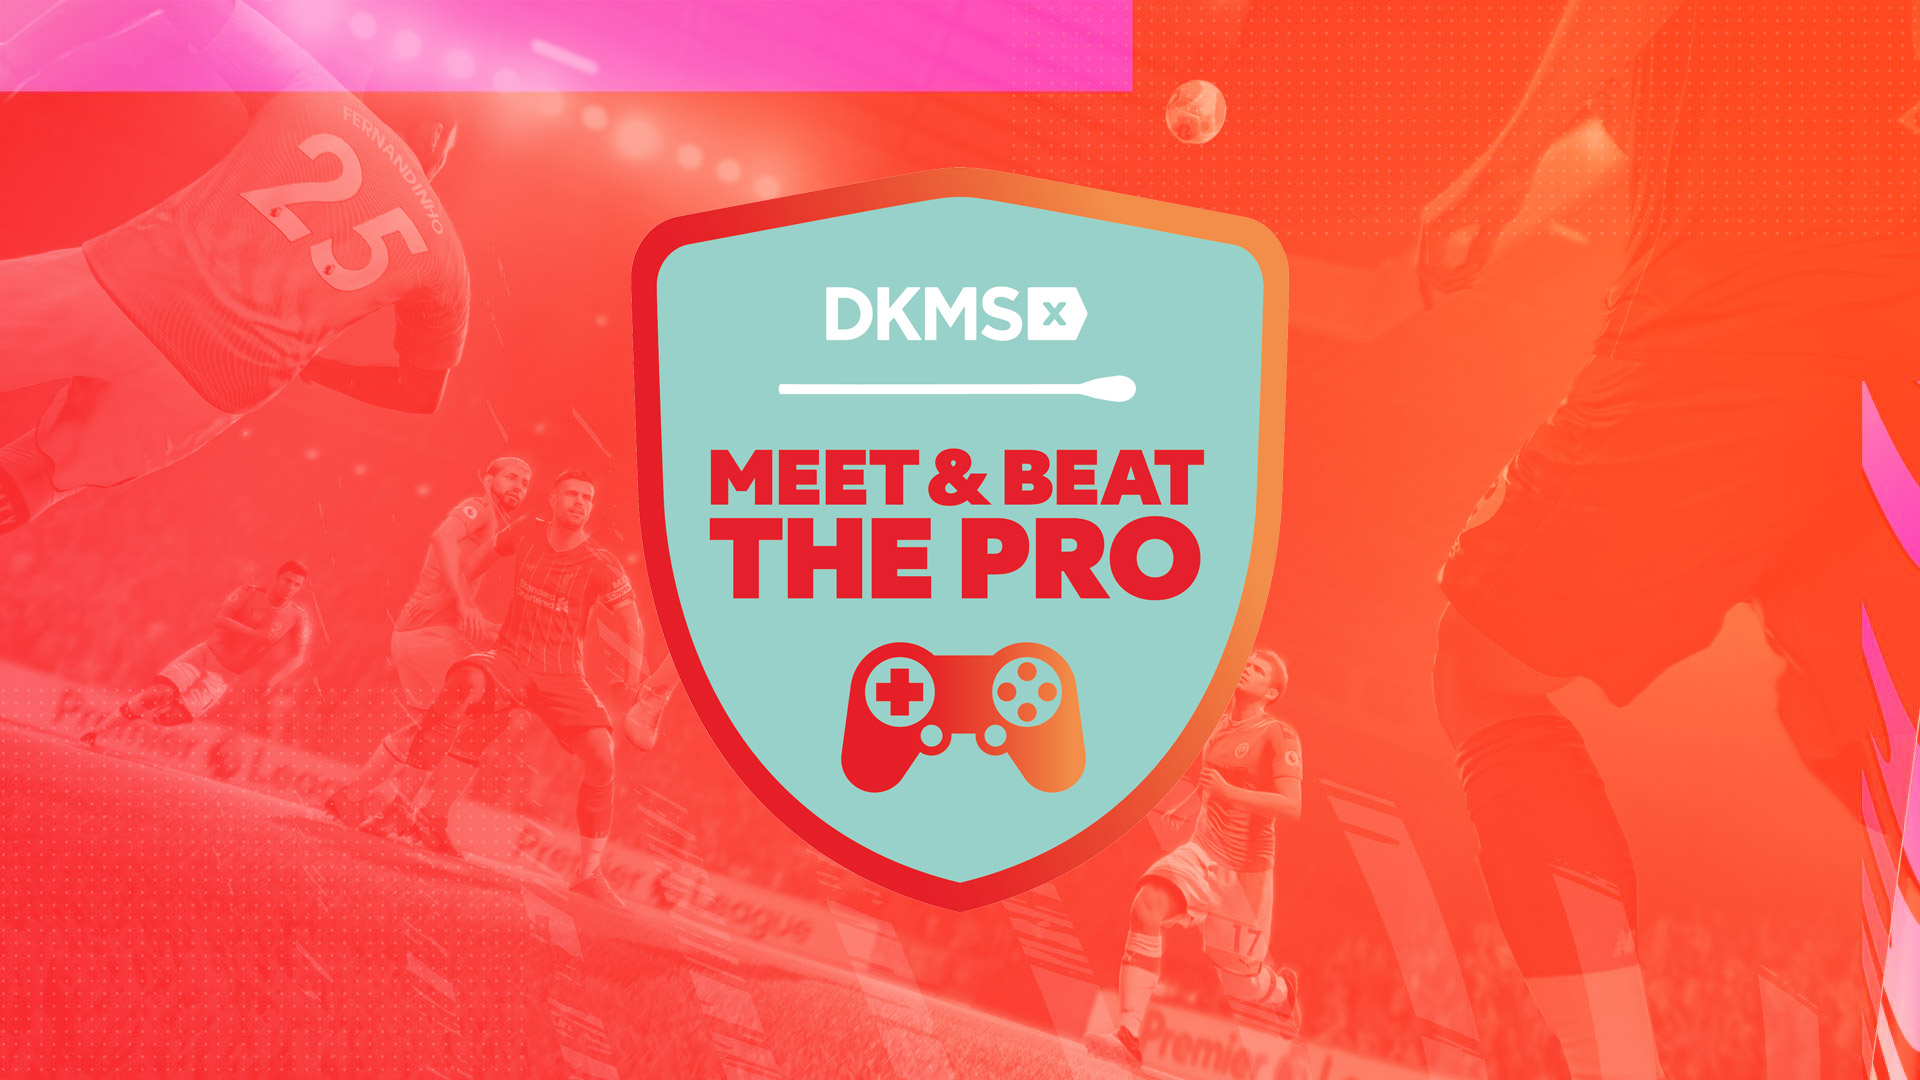 DKMS FIFA Turnier Meet and Beat the Pro